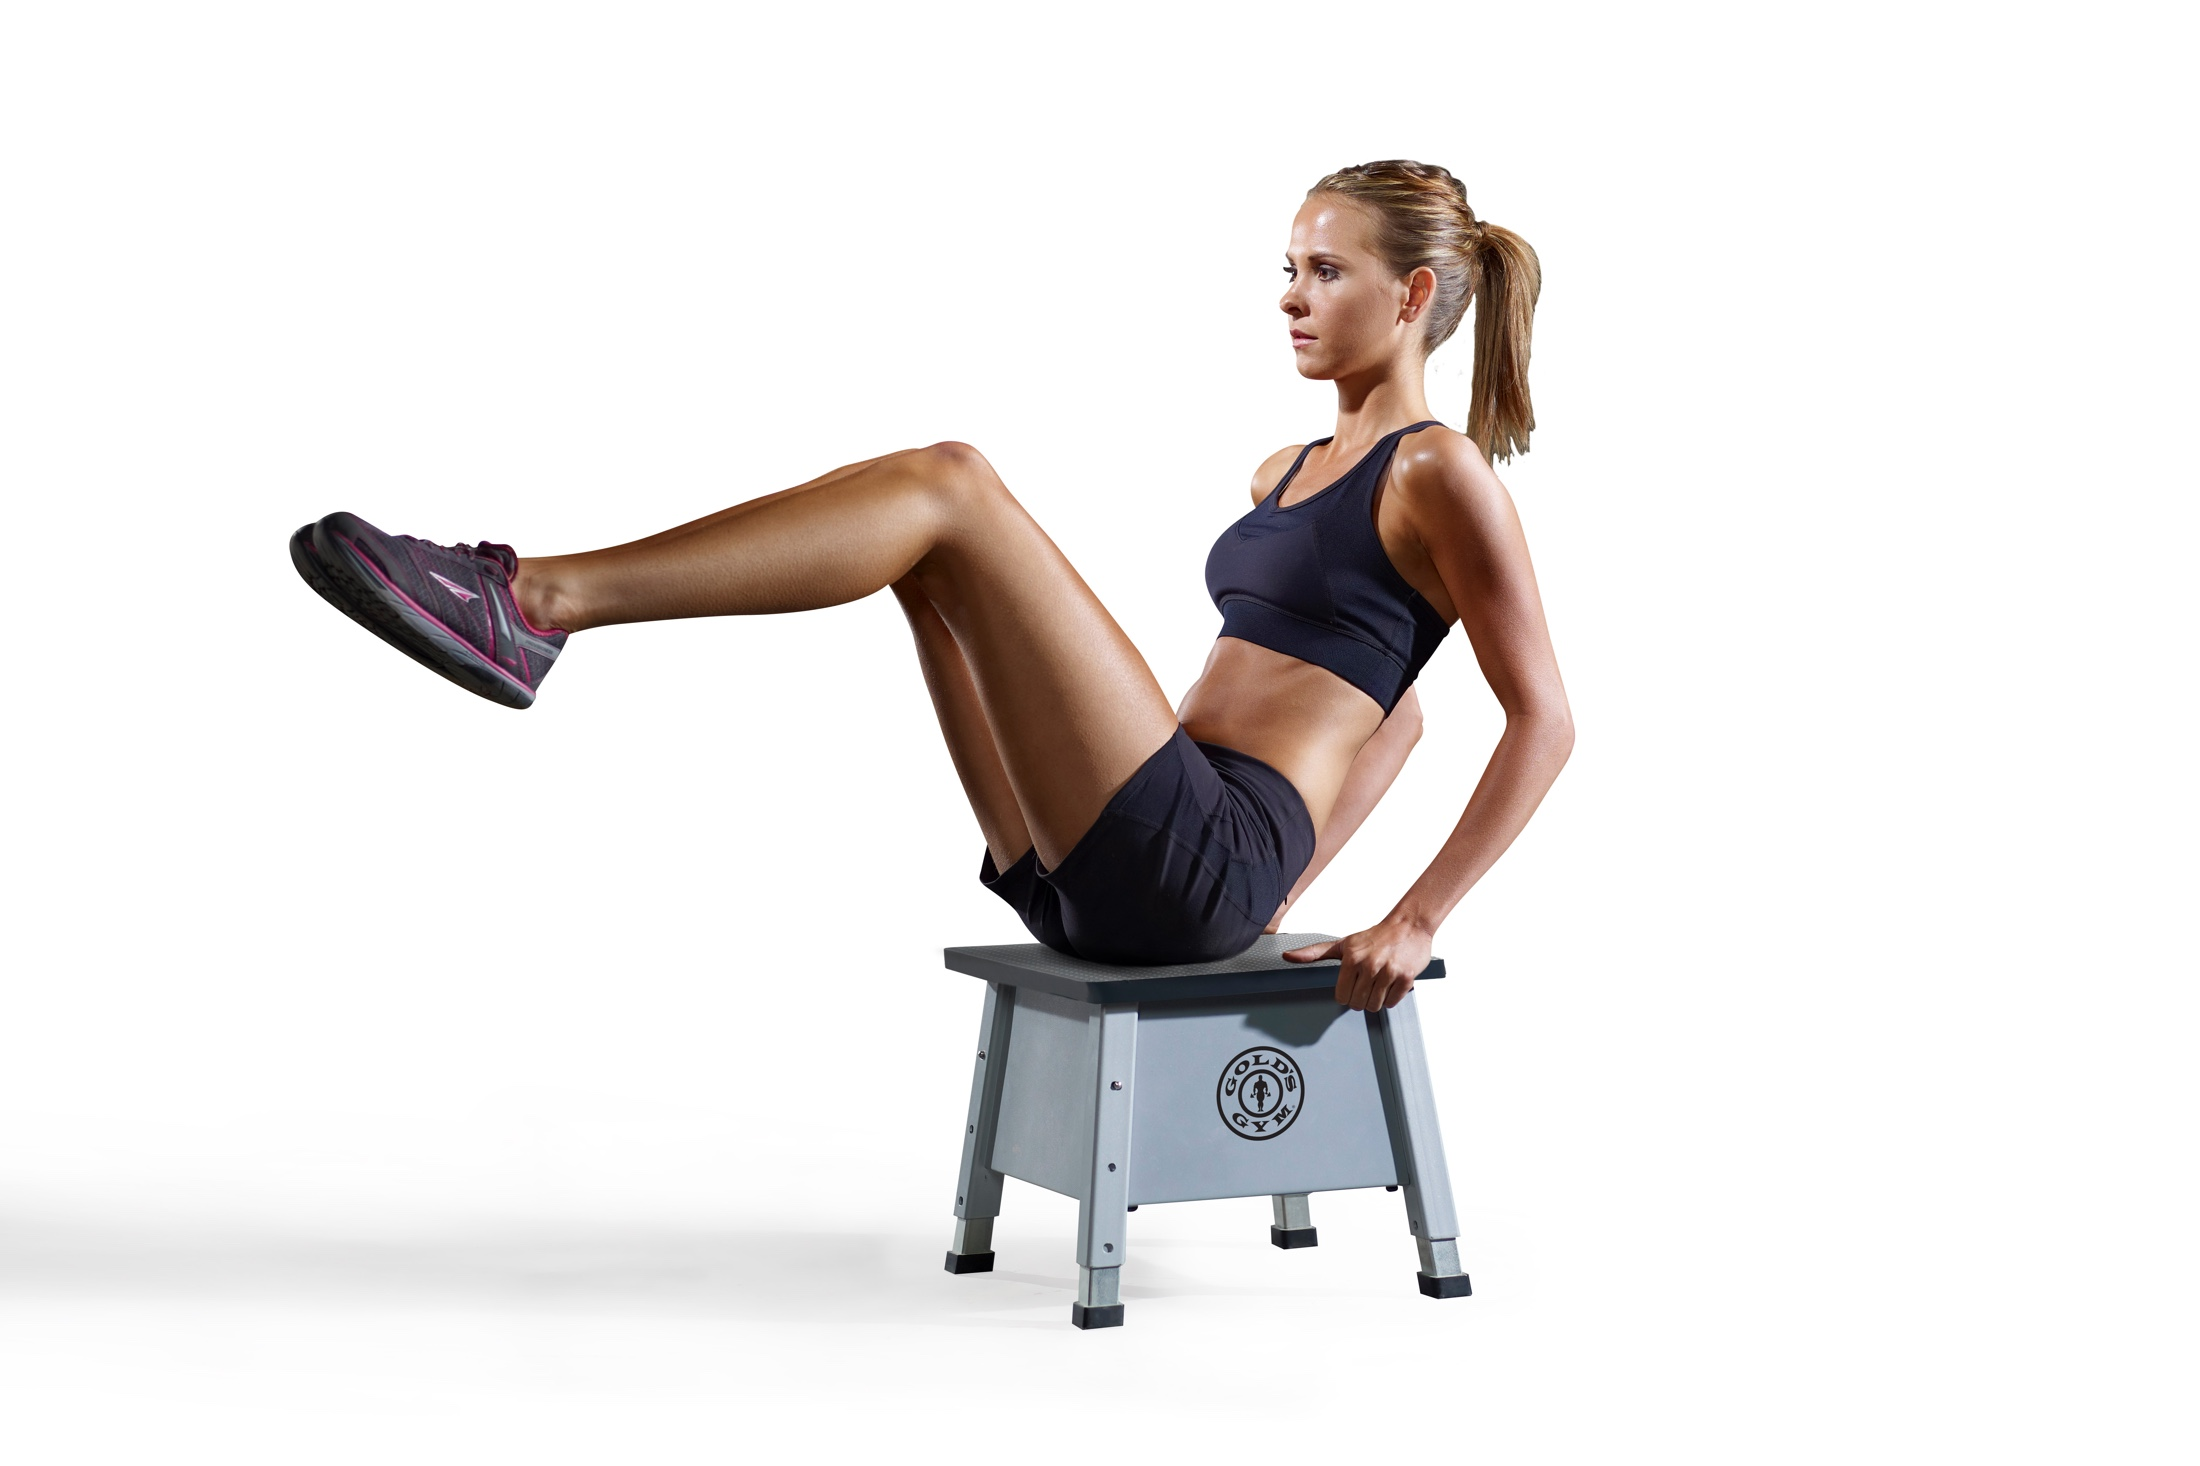 NordicTrack Gold's Gym Adjustable Plyometric Jump Box gallery image 7